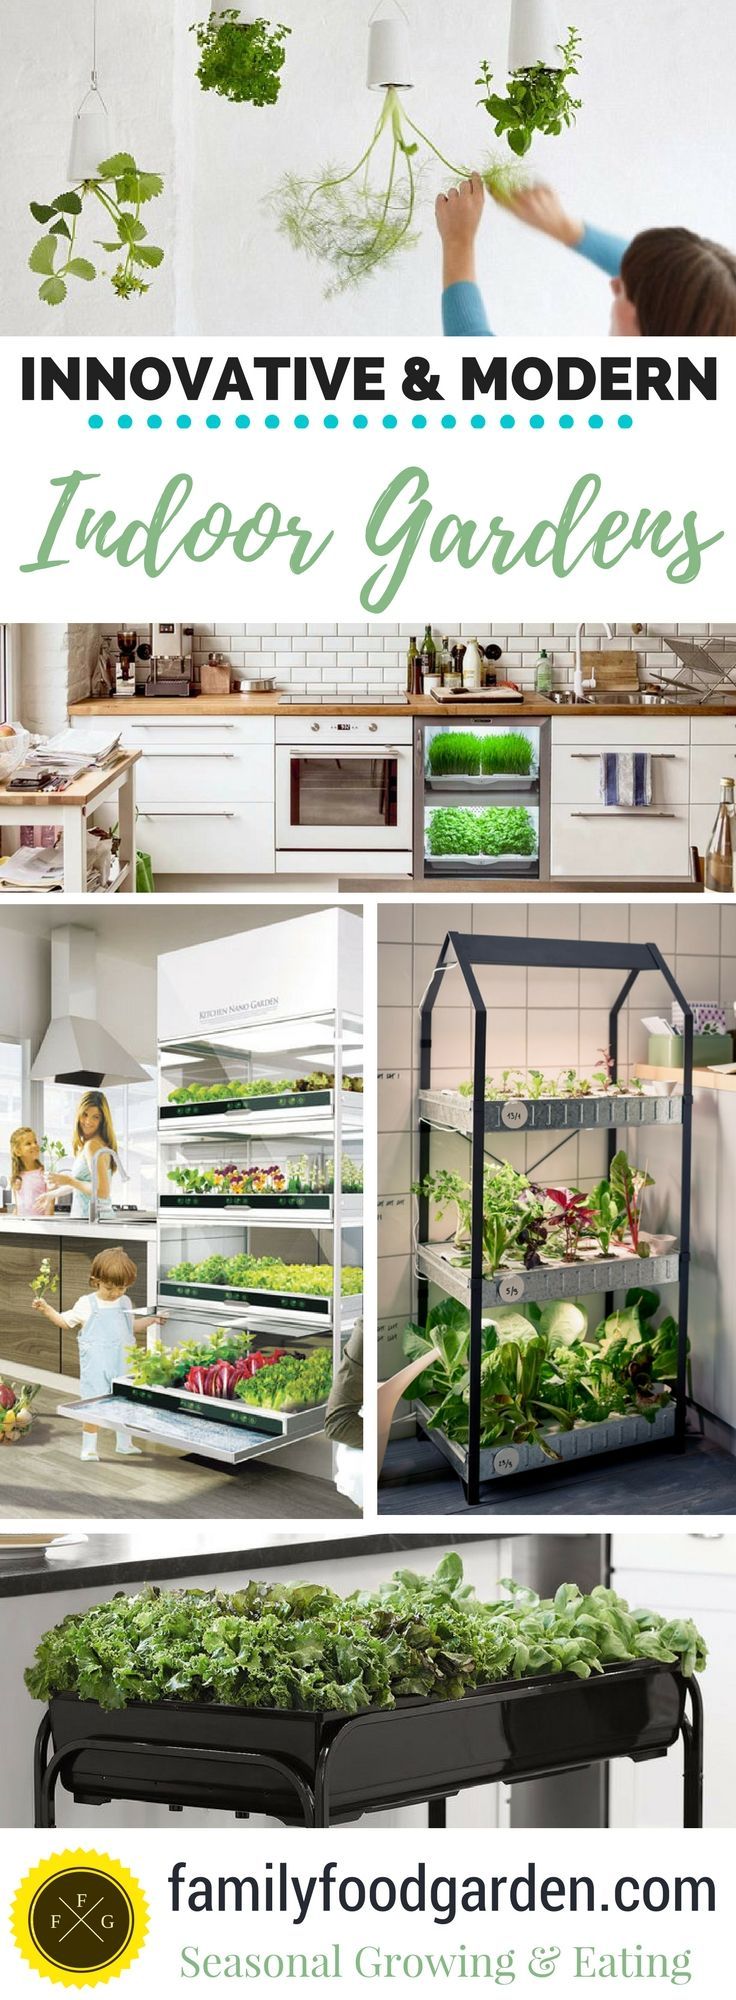 Indoor Gardening- Grow with the ways of the future                                                                                                                                                                                 More